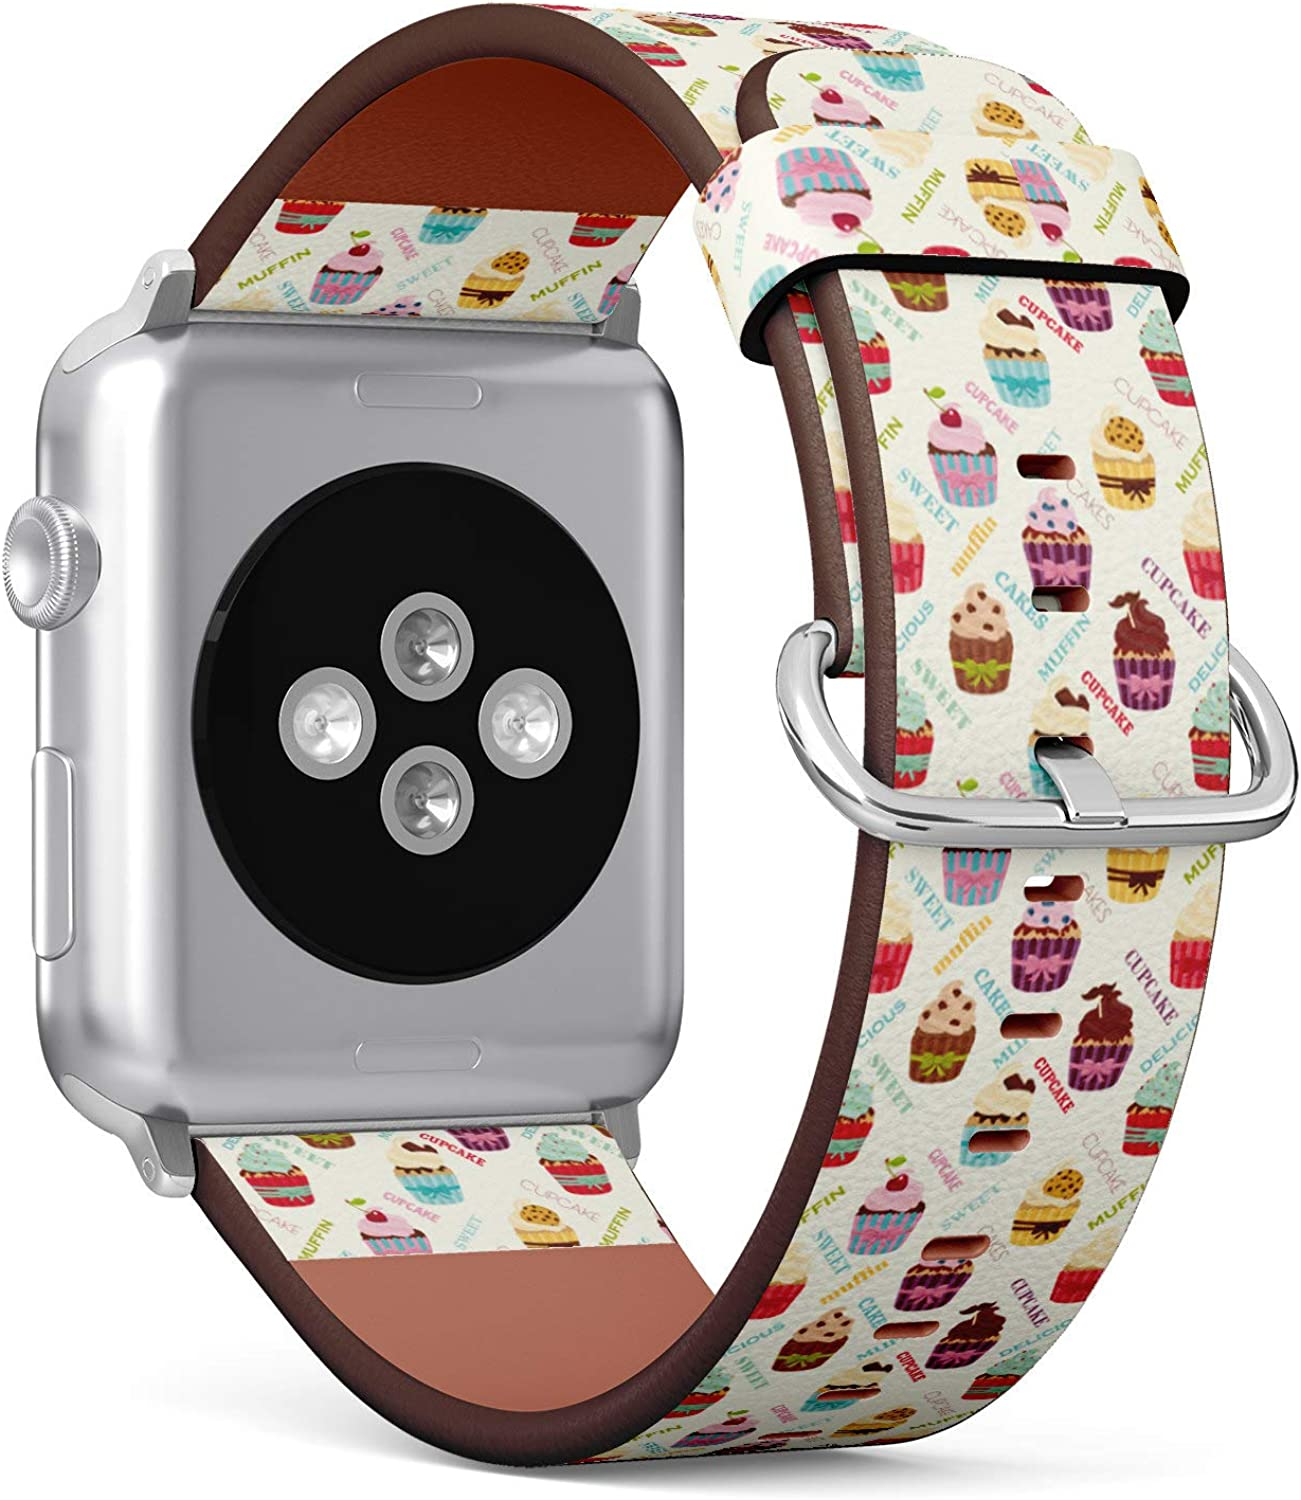 (Cute Pattern with Cupcakes) Patterned Leather Wristband Strap for Apple Watch Series 4/3/2/1 gen,Replacement for iWatch 42mm / 44mm Bands